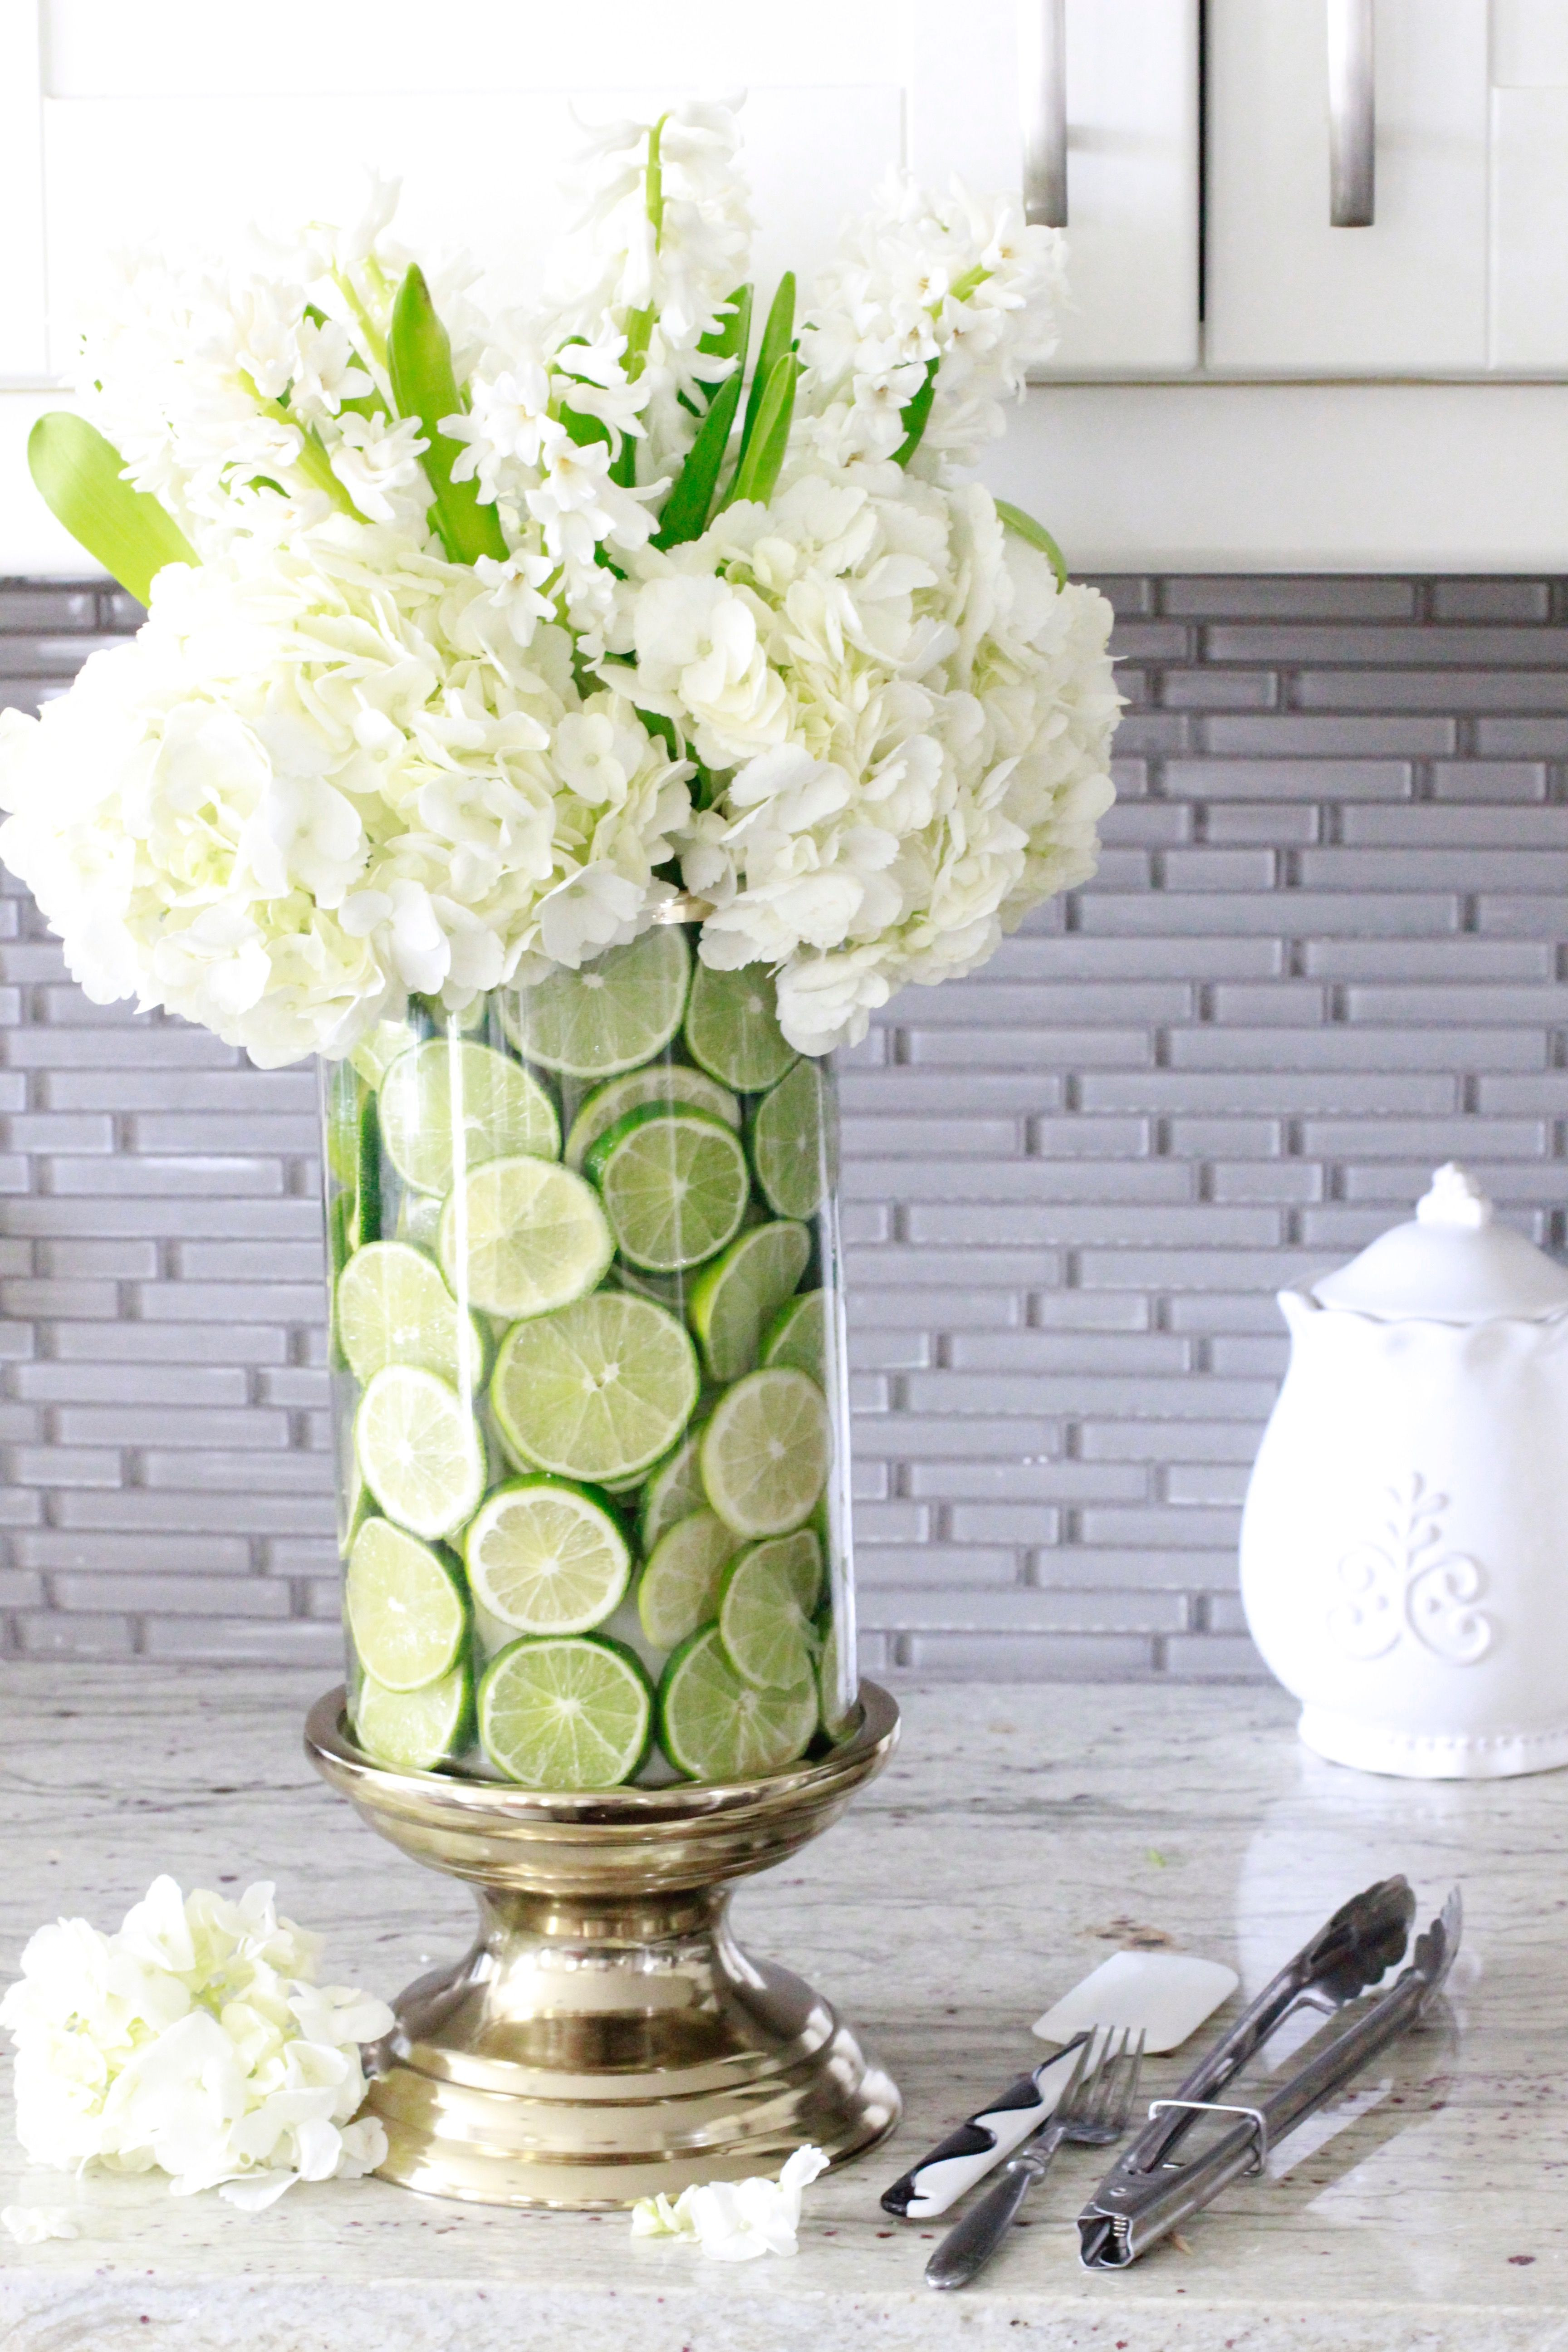 Learn how to create a fruit and floral arrangement in just a few easy steps Also see what other gorgeous arrangements my friends are sharing